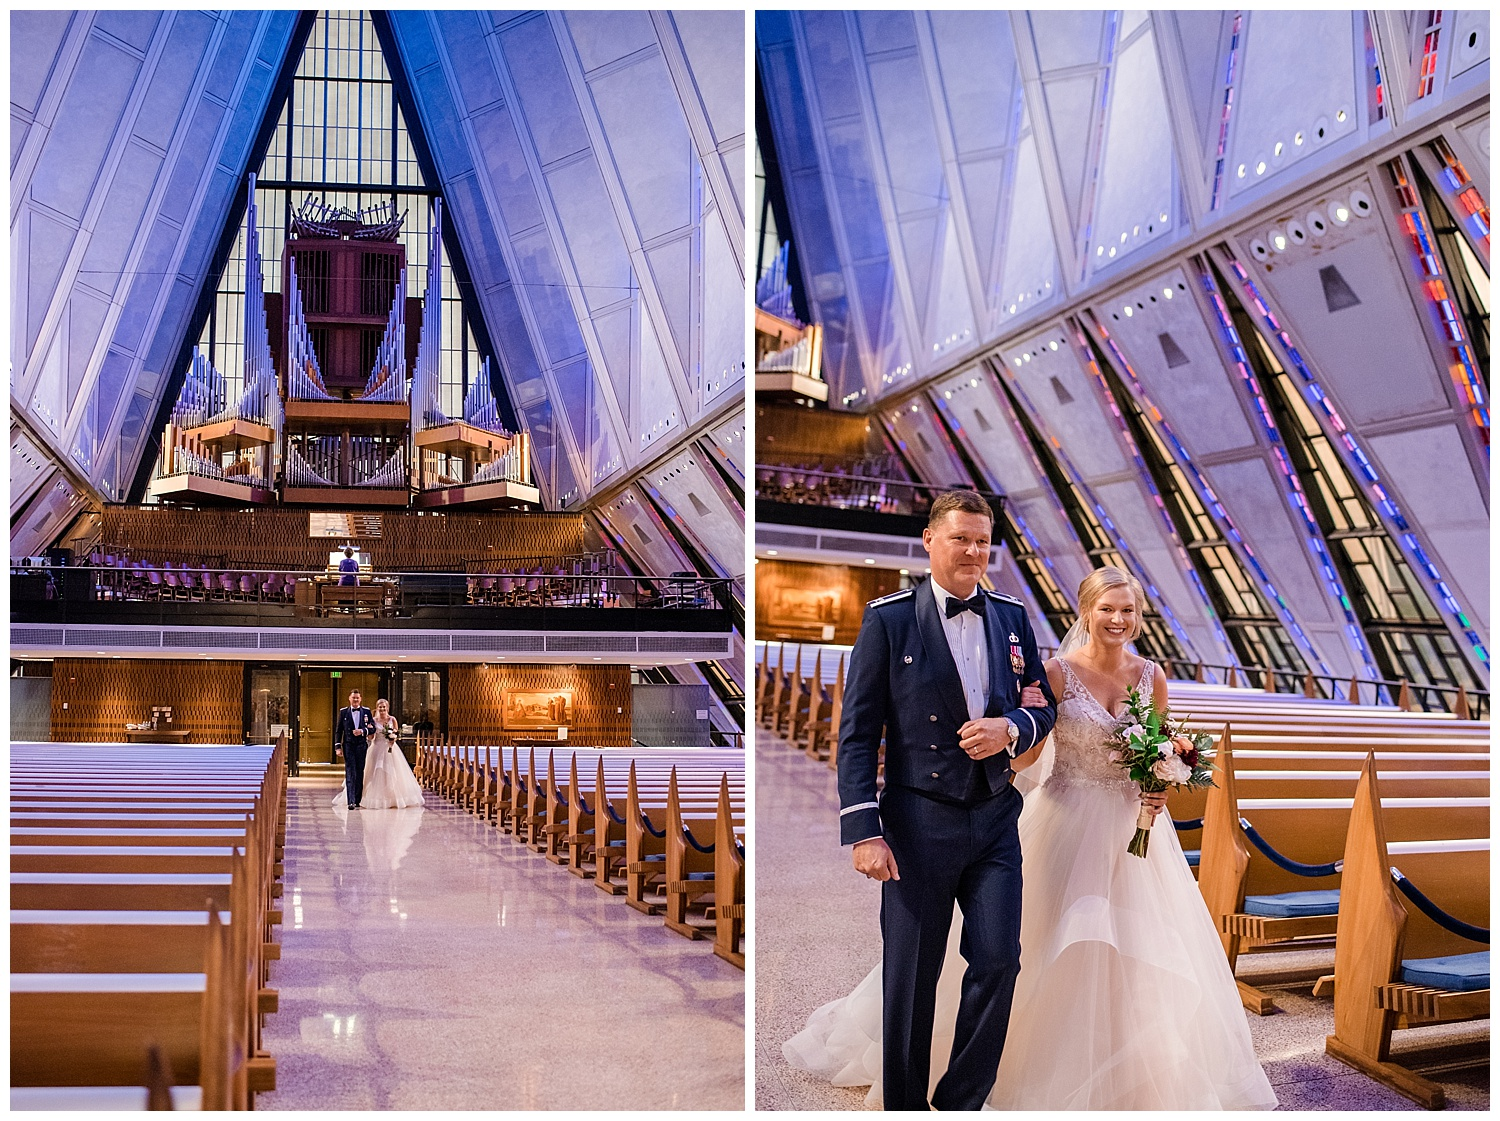 Military Wedding, Cadet Chapel Wedding, Wedding Ceremony walking down the aisle, bride and father walking down the aisleColorado Wedding Photographer, Denver Wedding Photographer, Denver Elopement Photographer, Colorado Elopement Photographer, Rocky Mountain Wedding Photographer, Downtown Denver Photographer